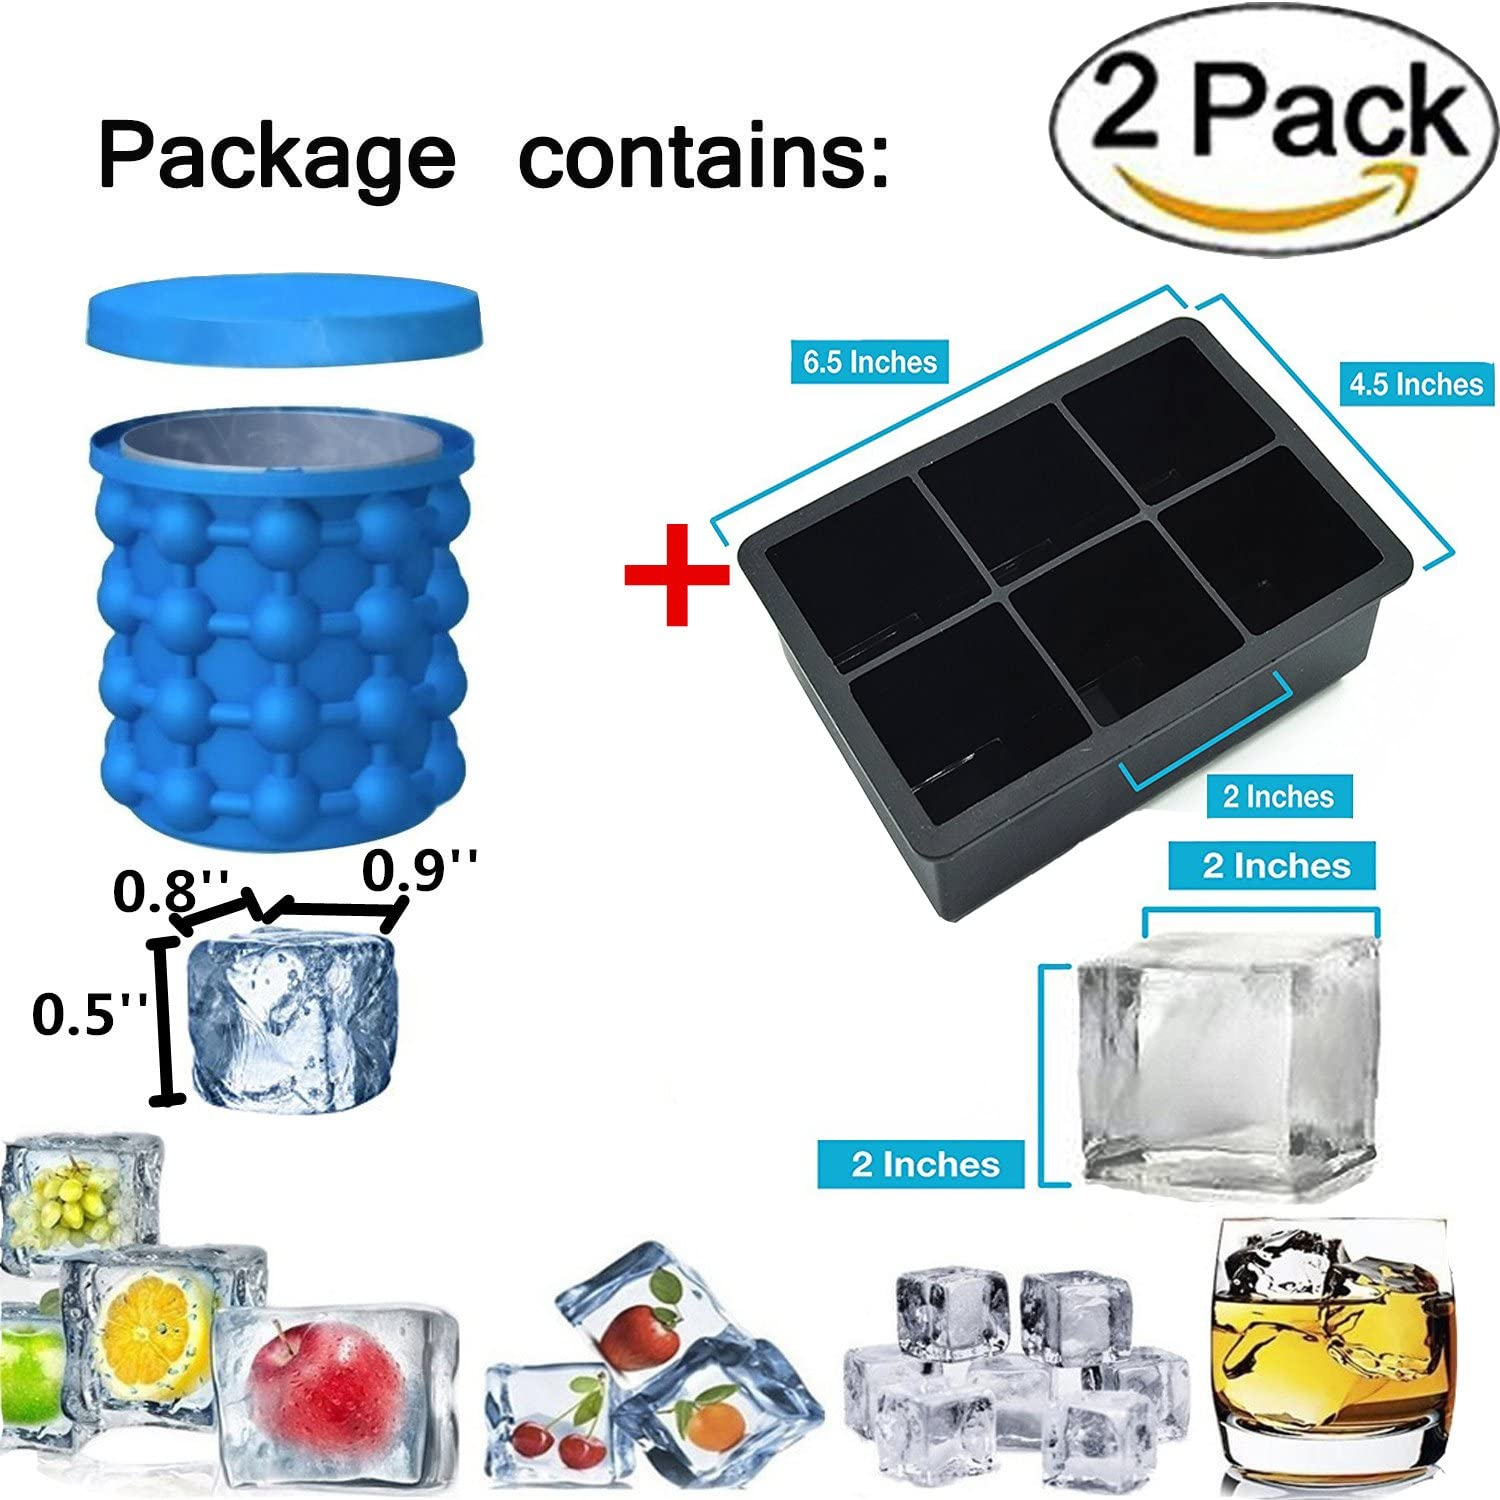 Ice Cube Maker Tray Set,1 Pack 4 Large Ice Ball Maker Tray Mold with 1 Pack Ice Cube Maker Genie Silicone Ice Trays Bucket Include Removable Lid Easy Release Freezer Molds for Dishwasher Safe Black